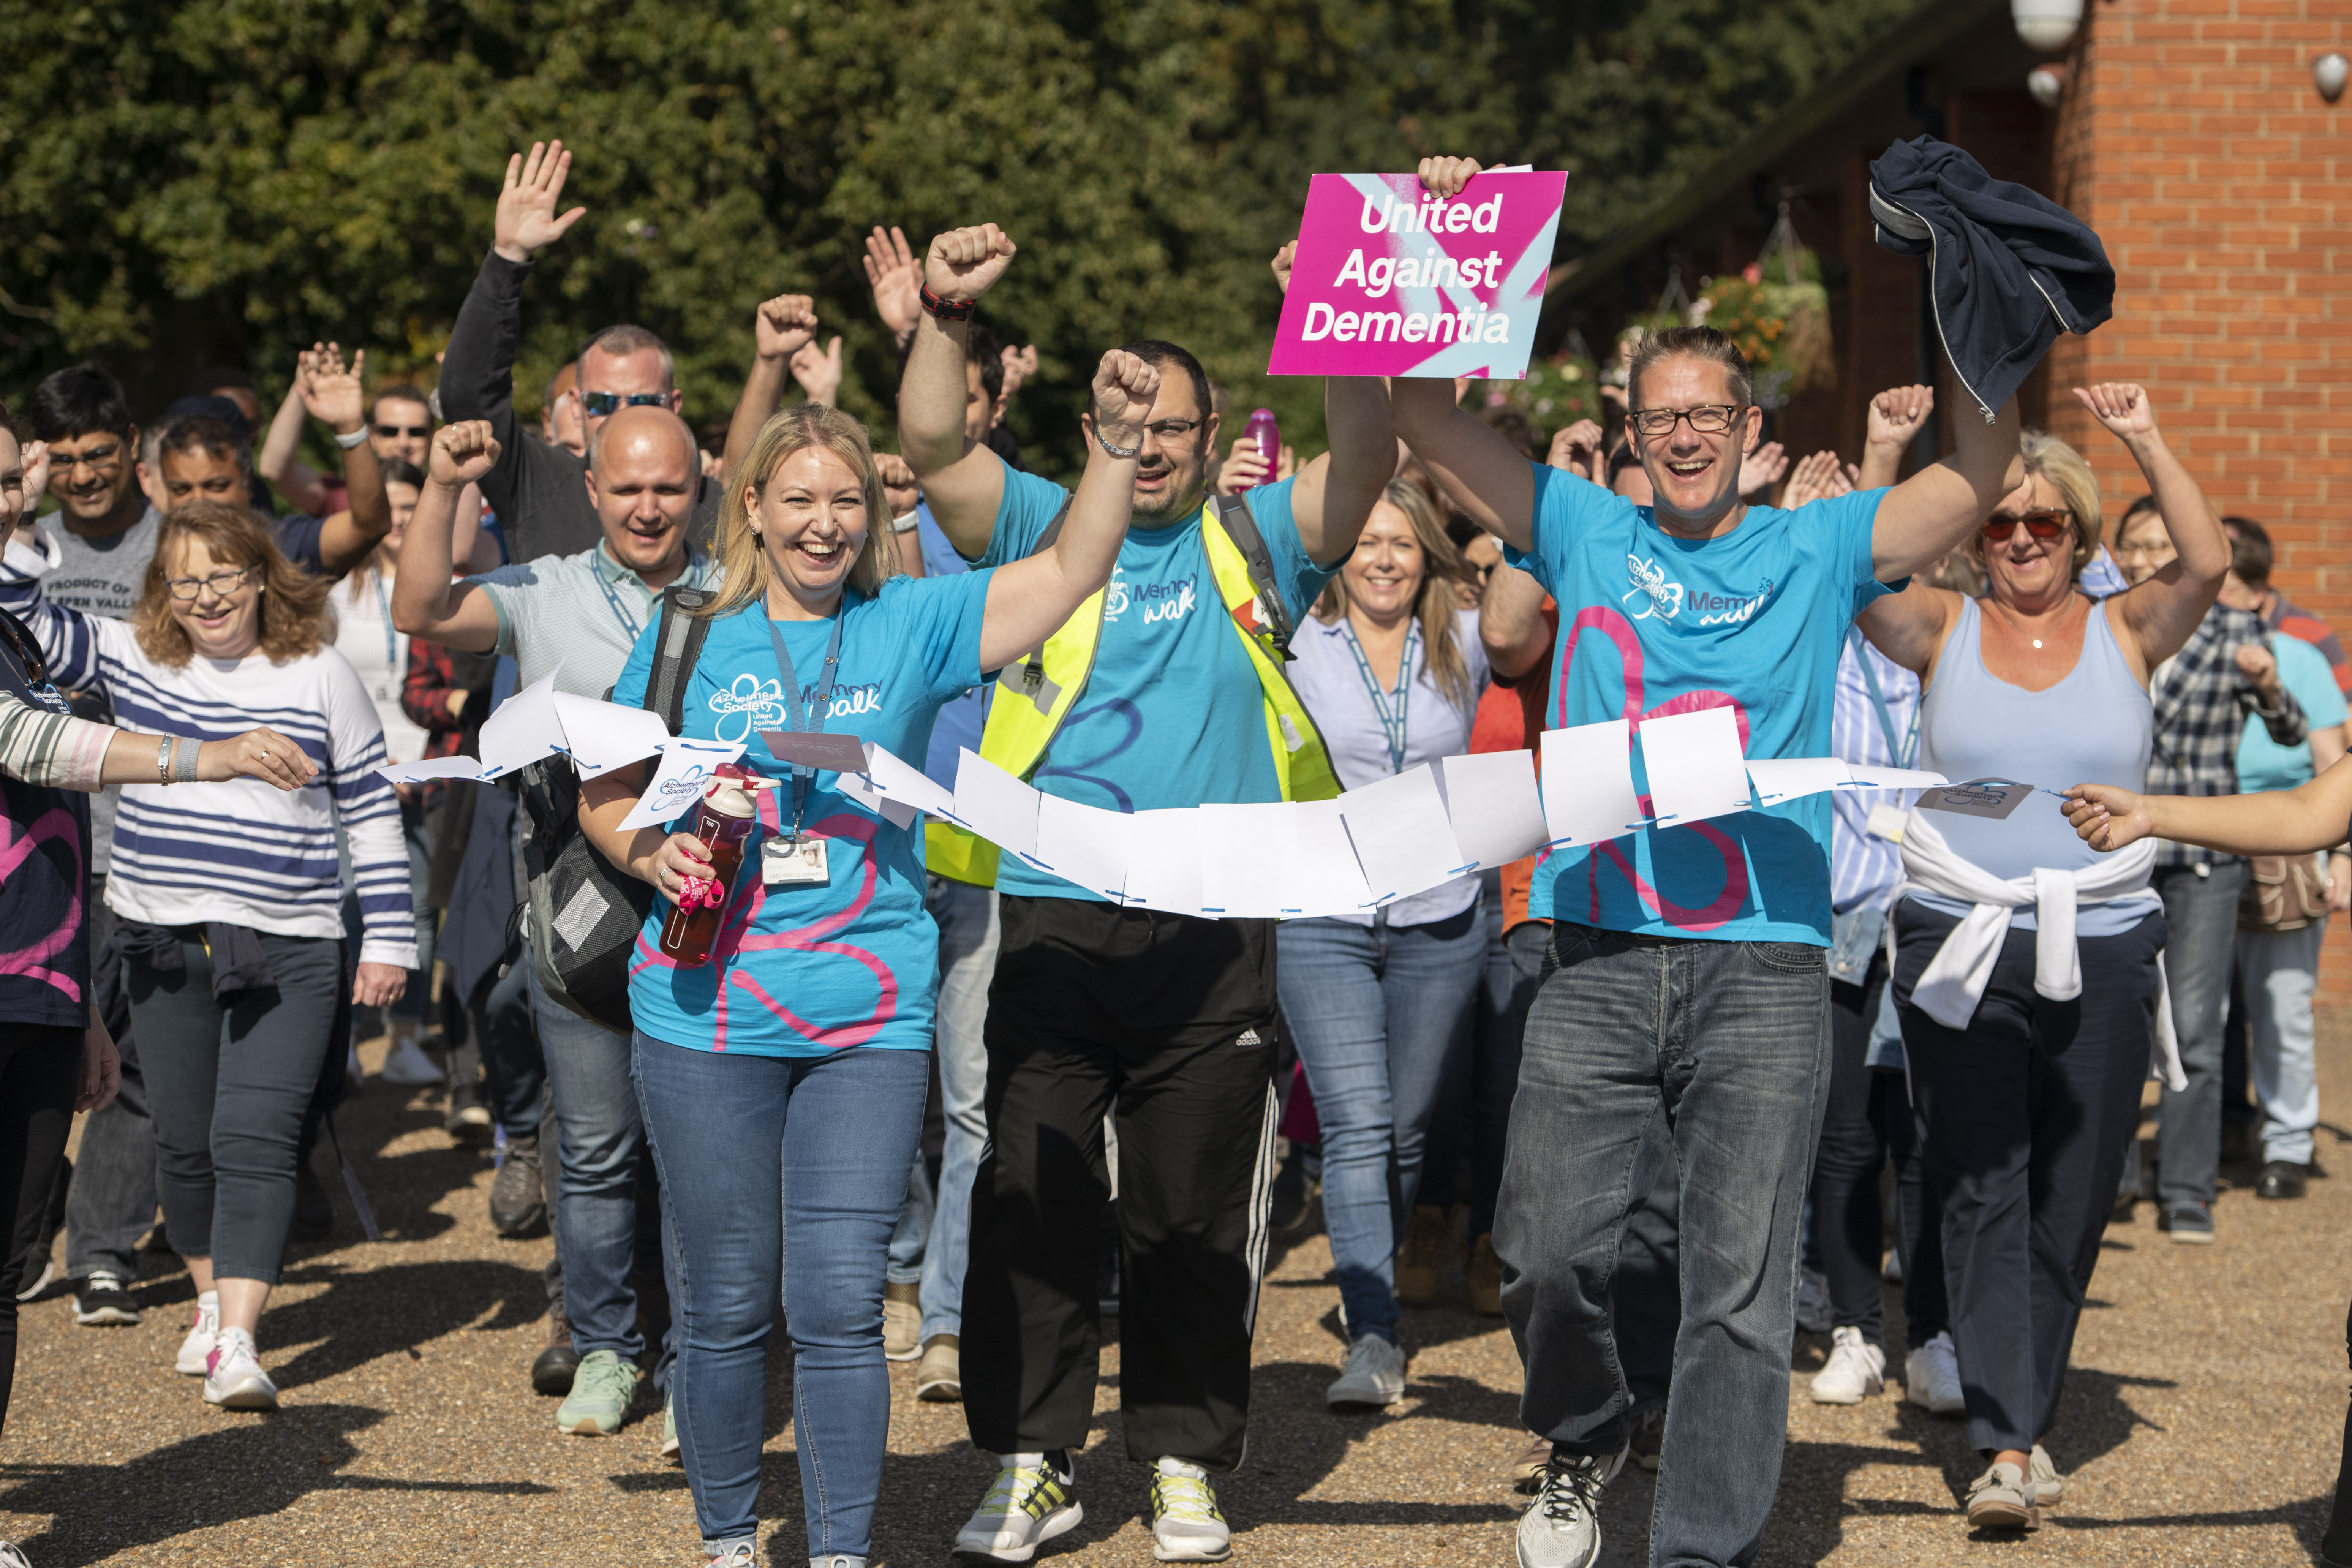 McKesson UK colleagues raise vital funds to support people living with dementia